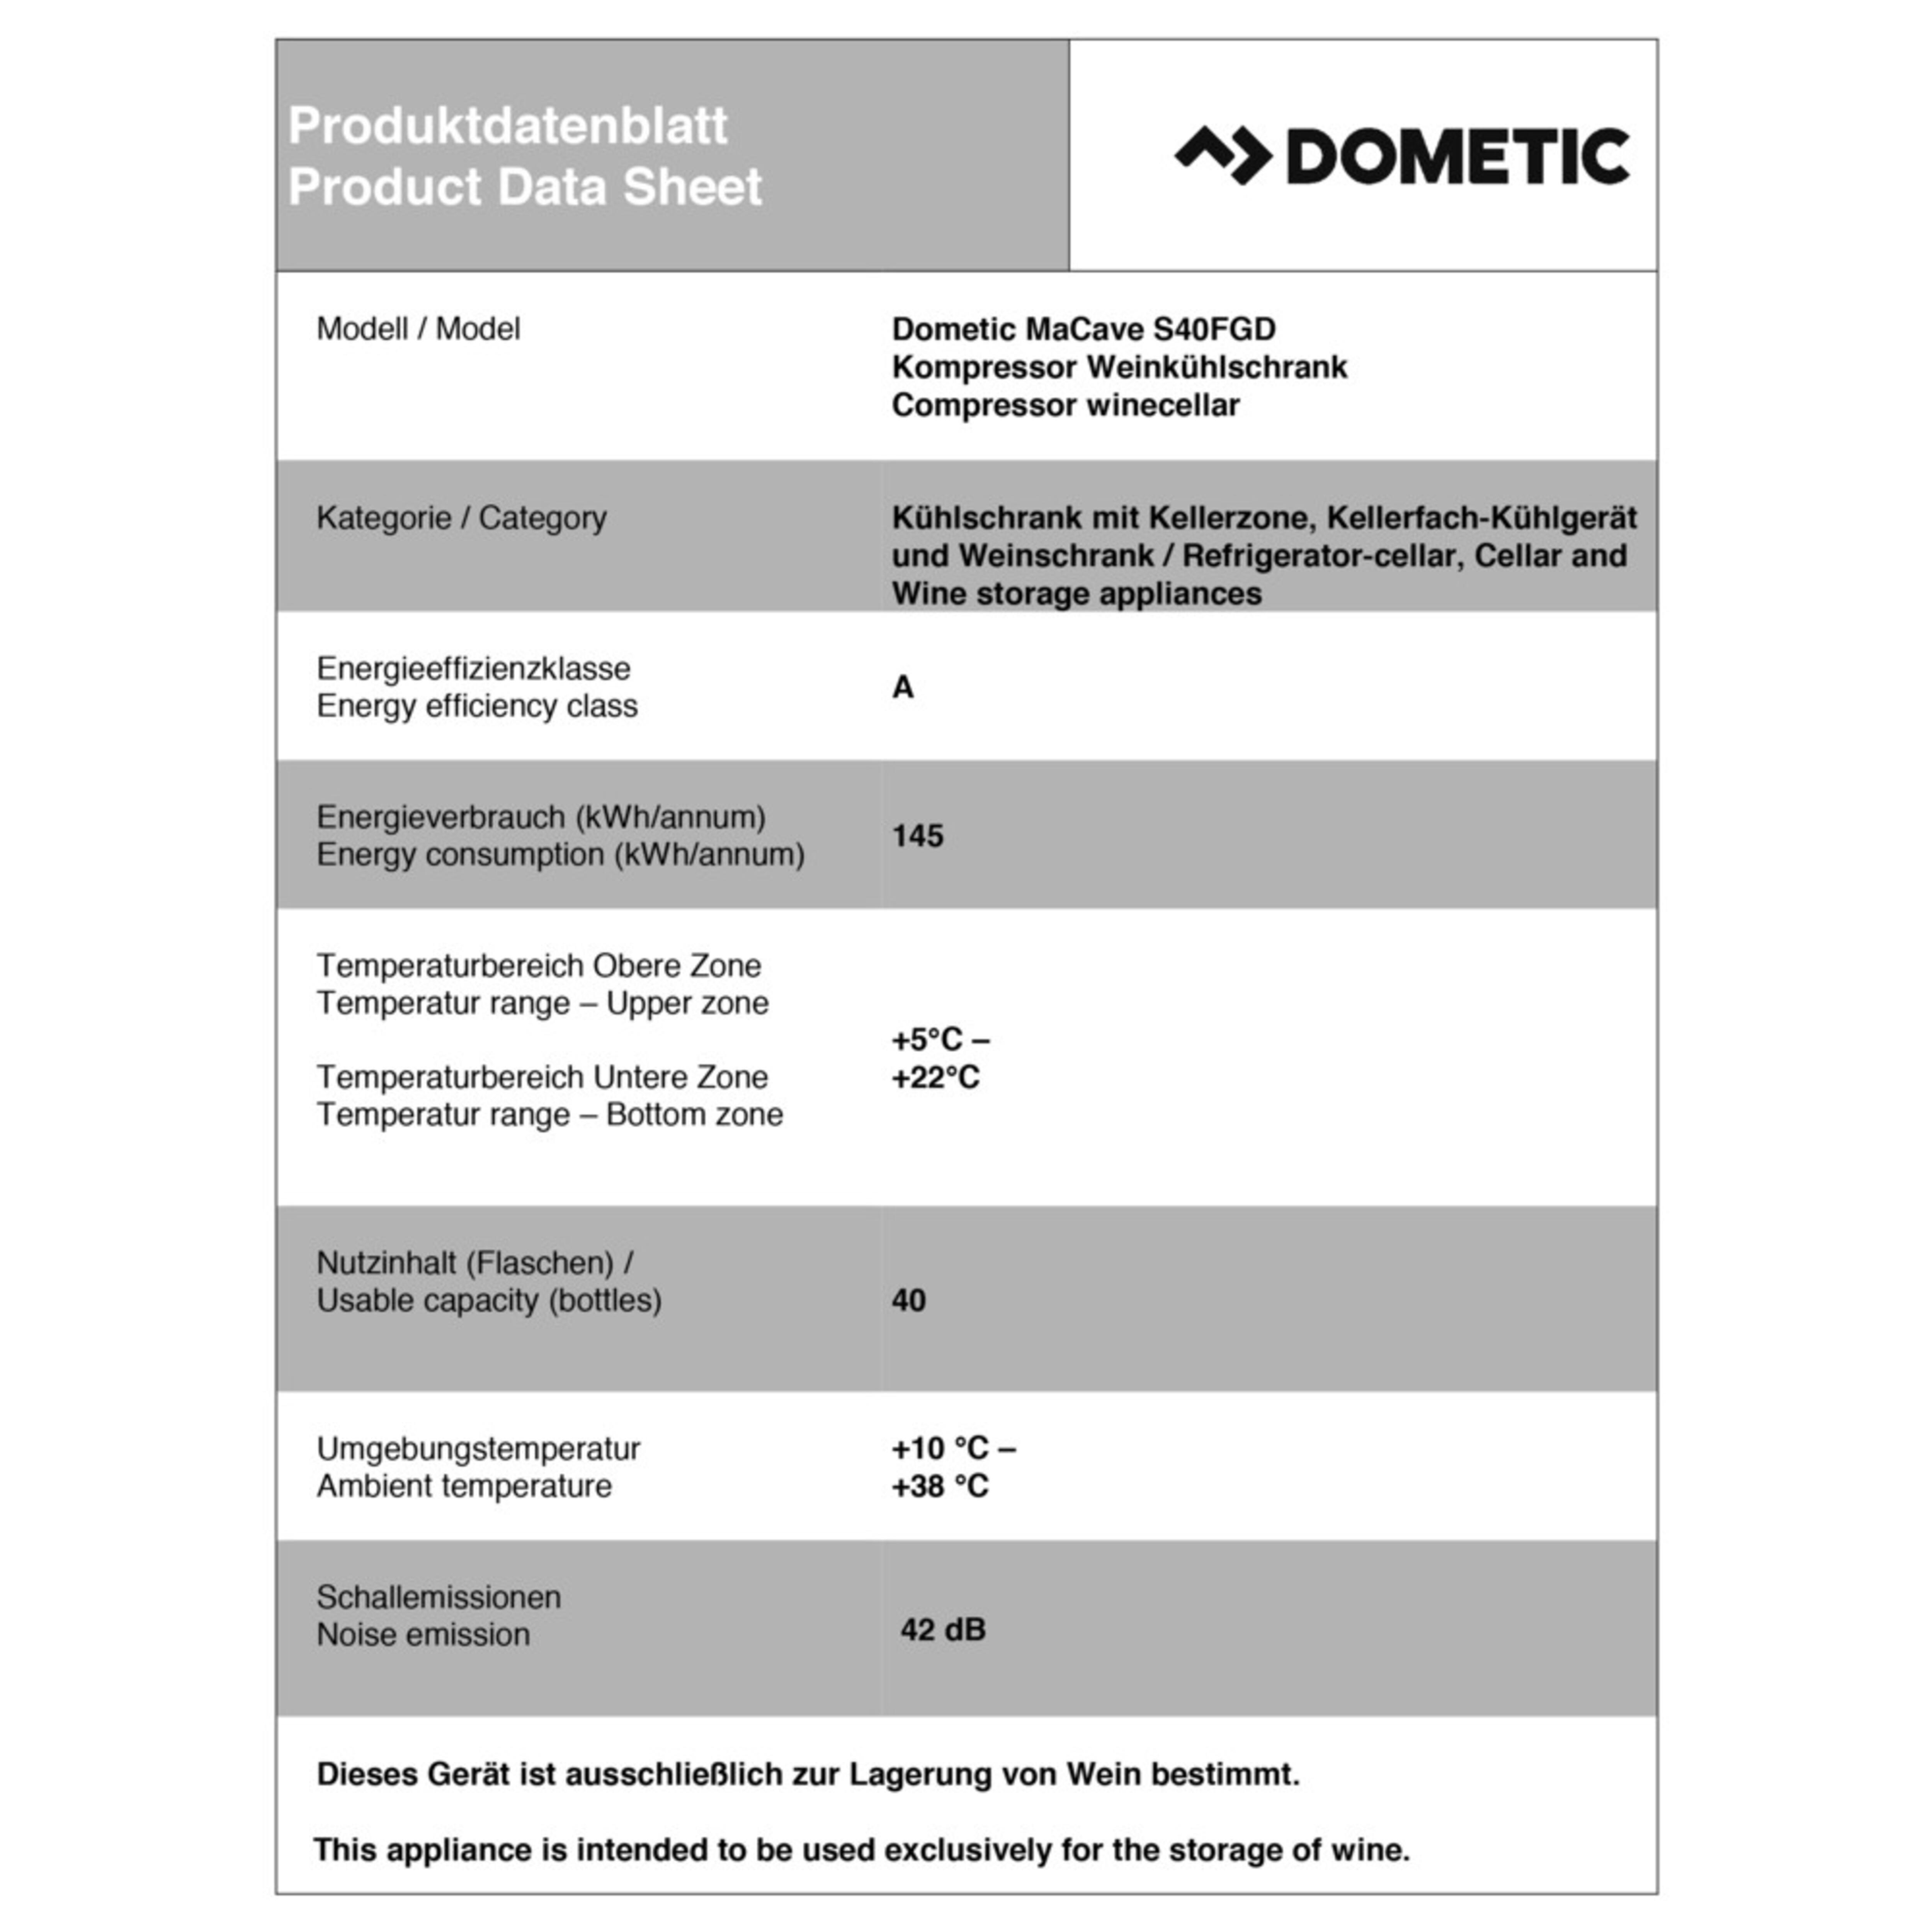 Dometic MaCave S40FGD Productkaart